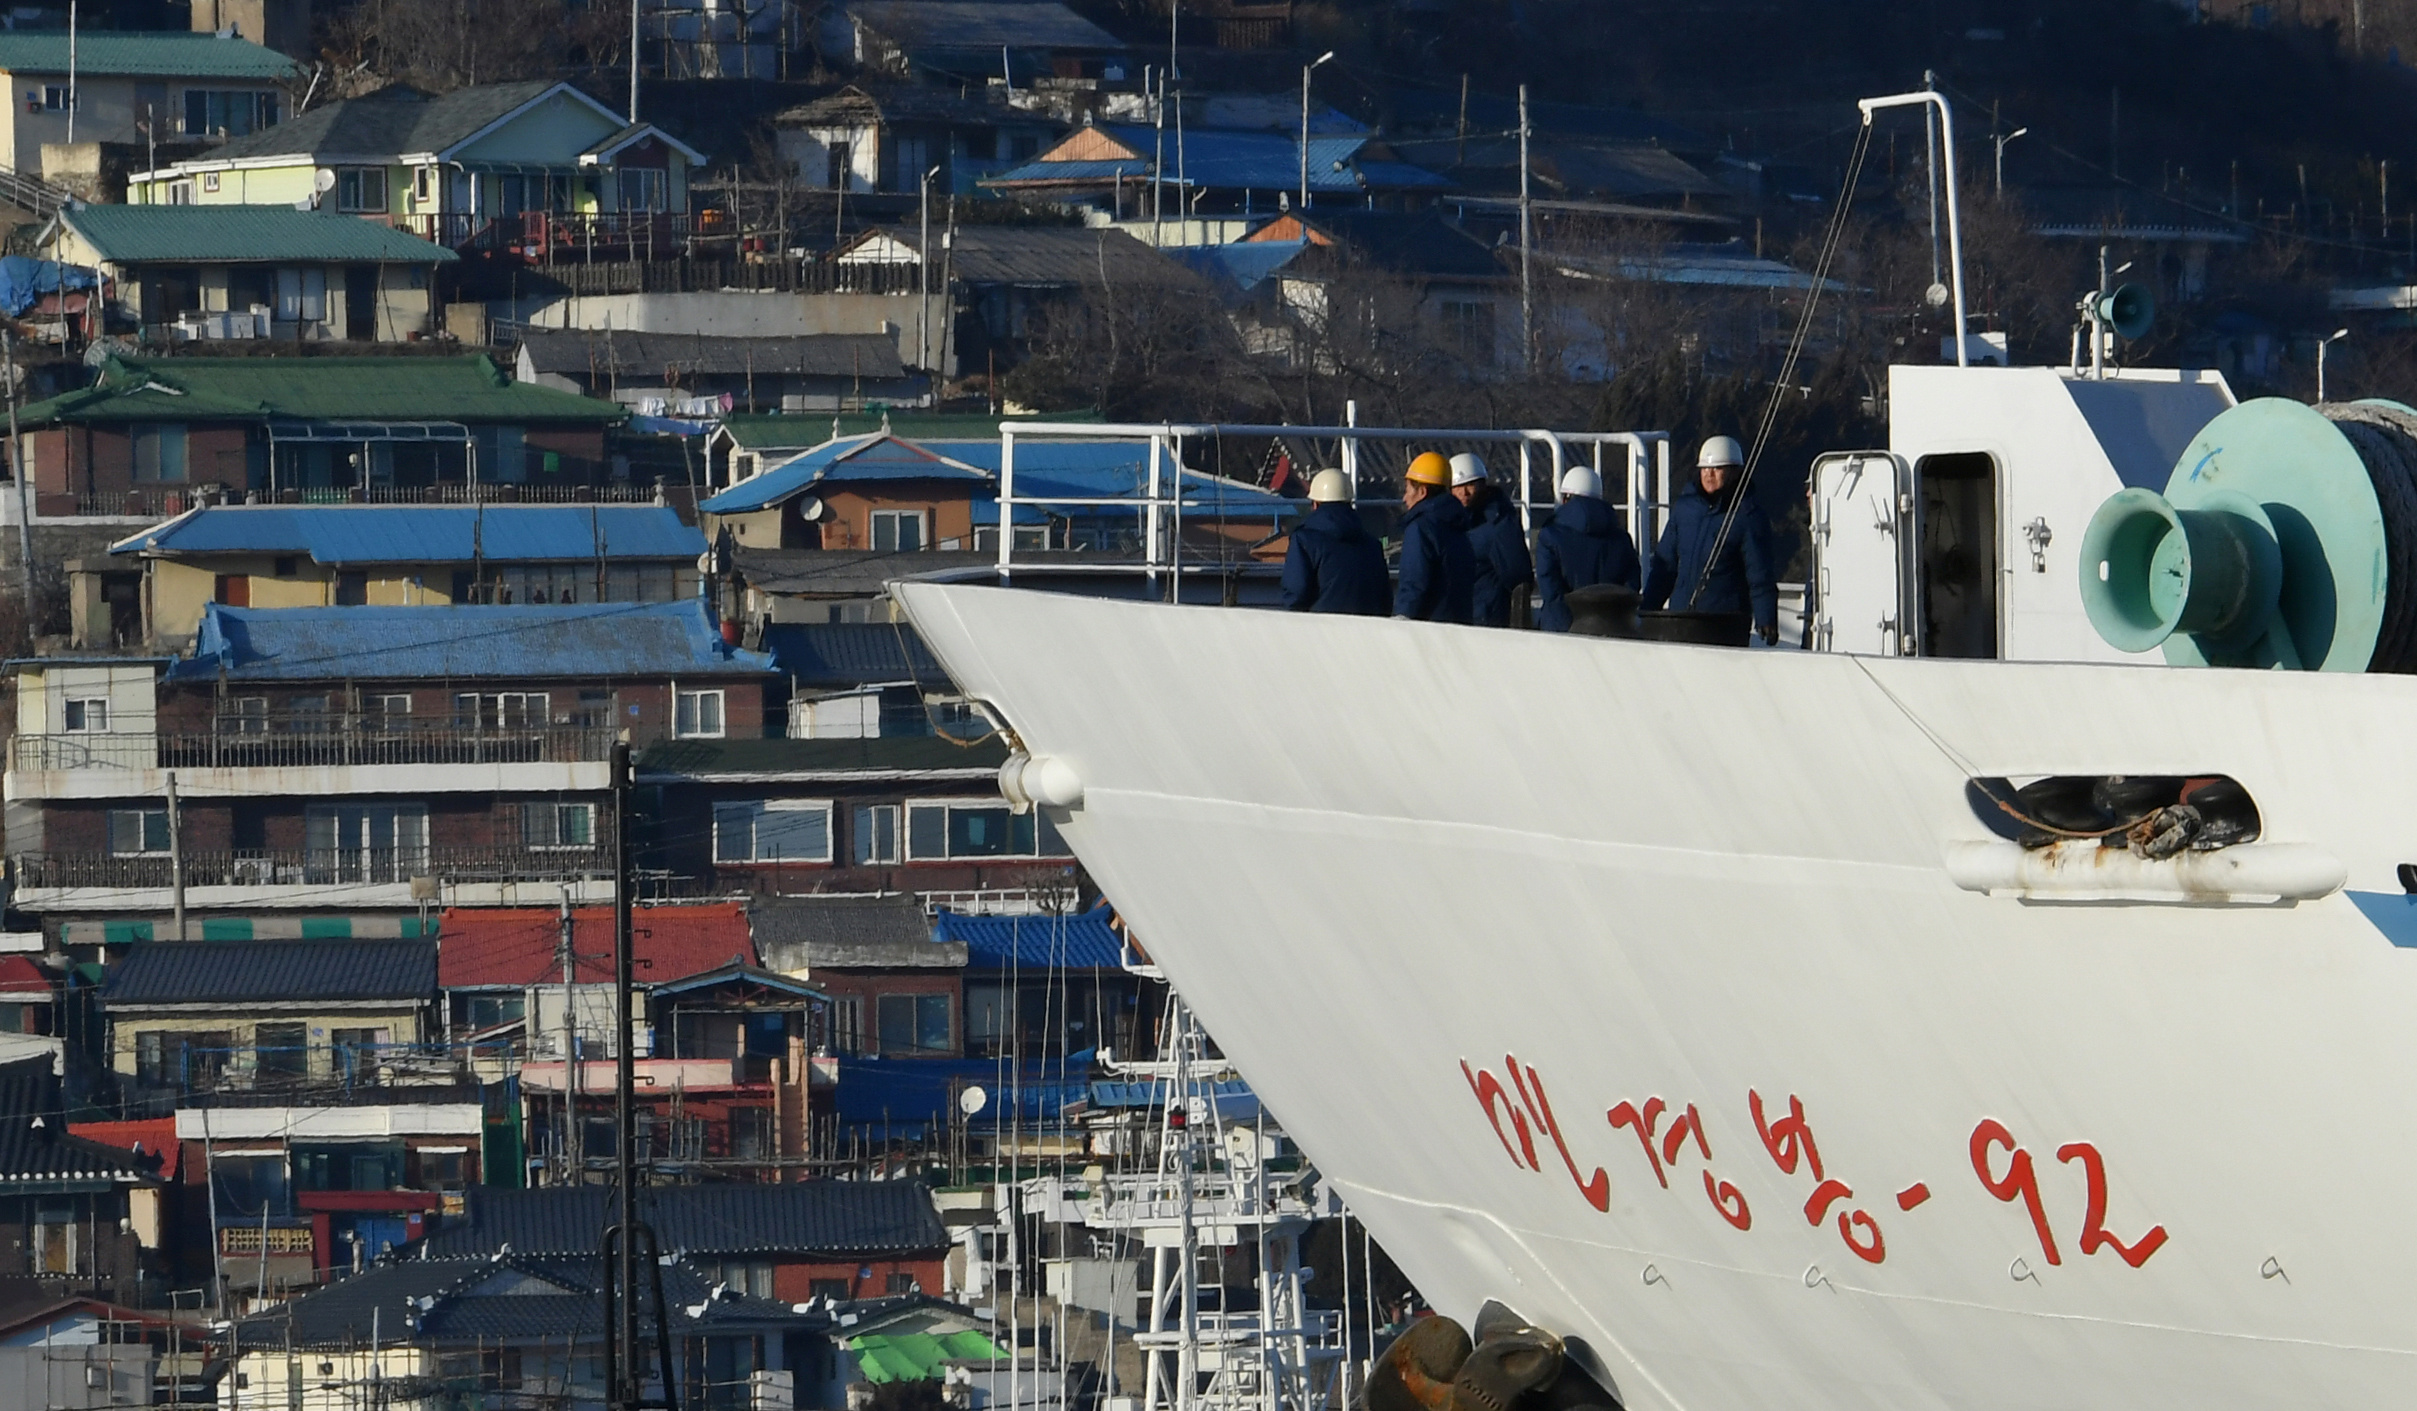 North Korean ship Mangyongbong-92 carrying the Samjiyon art troupe arrives at Mukjo port in Donghae, South Korea, Feb. 6, 2018